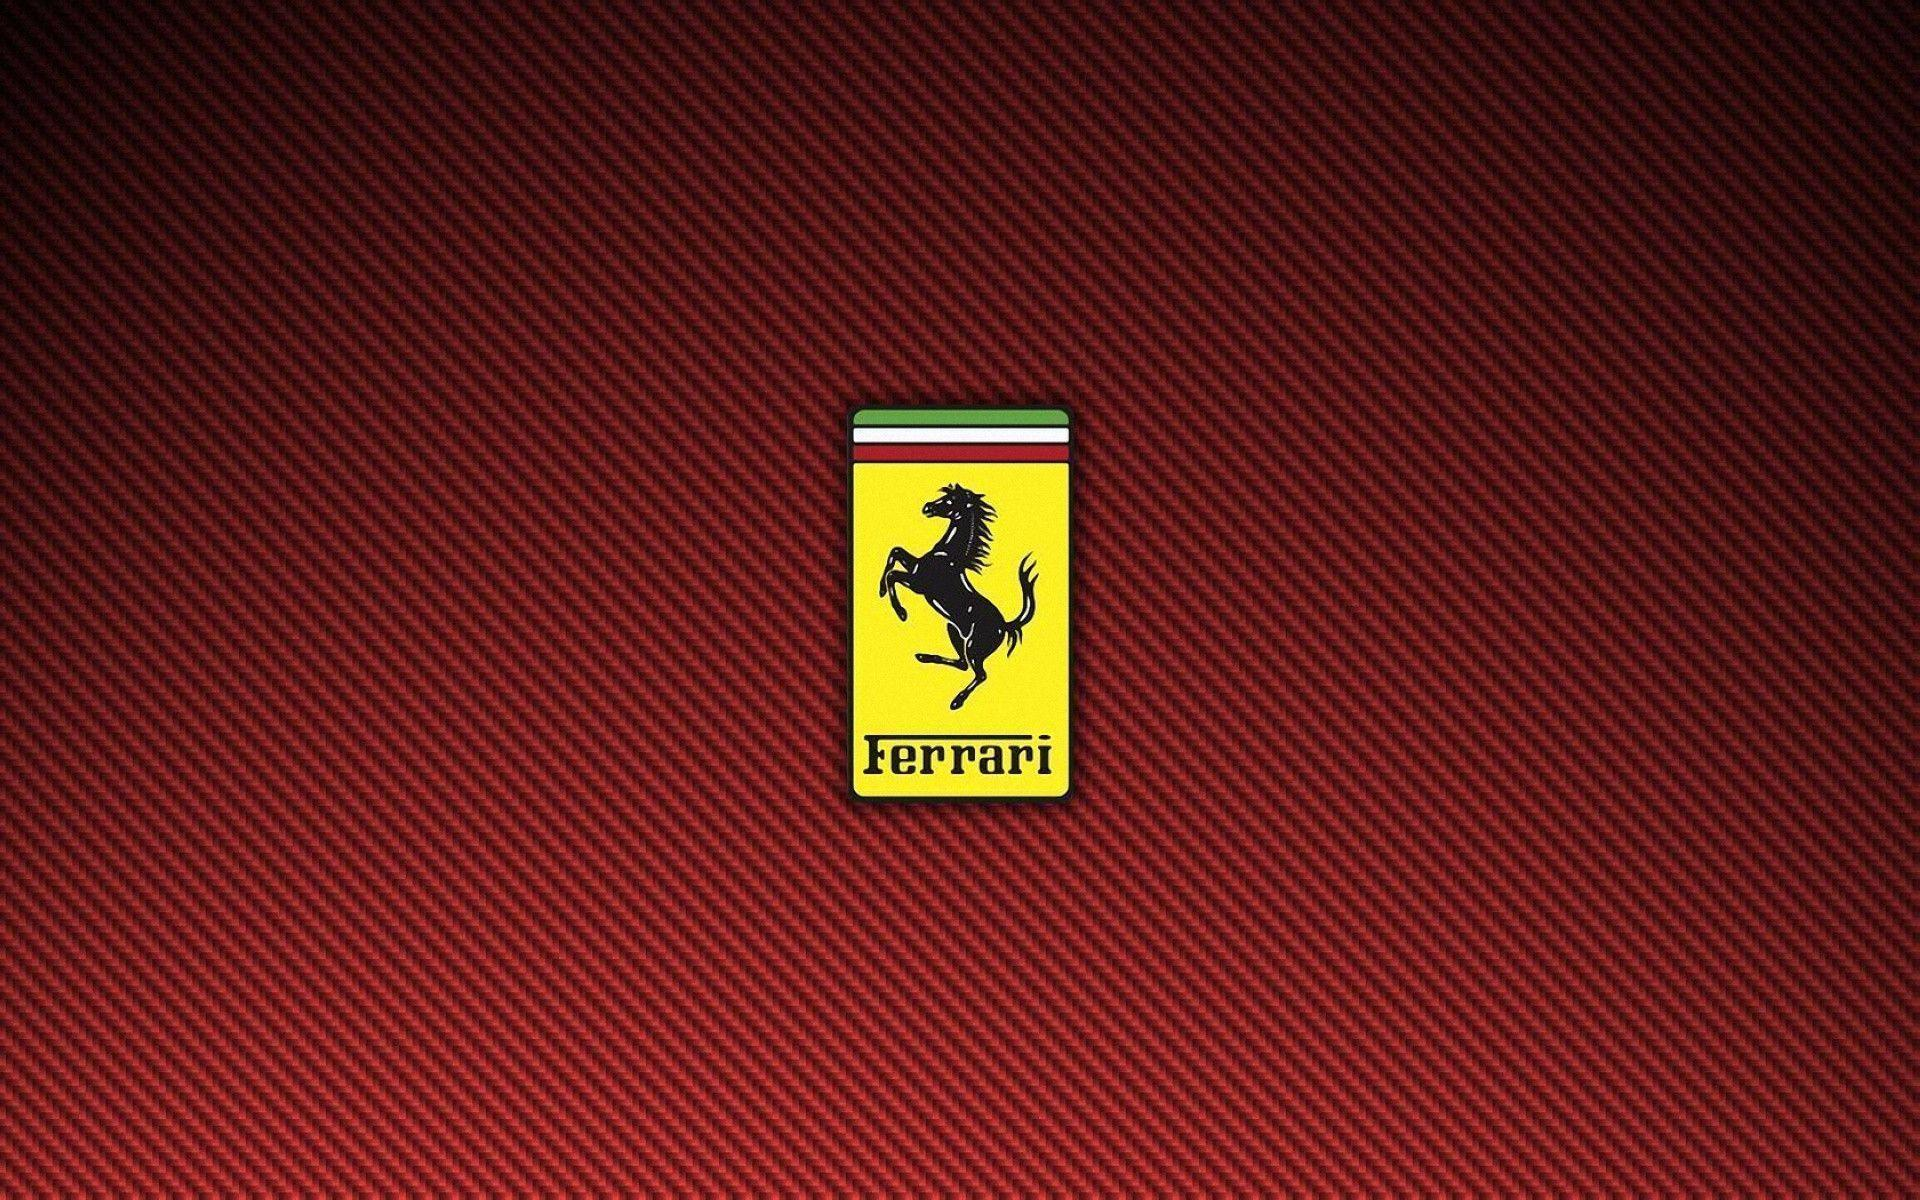 FunMozar – Ferrari Logo Wallpapers